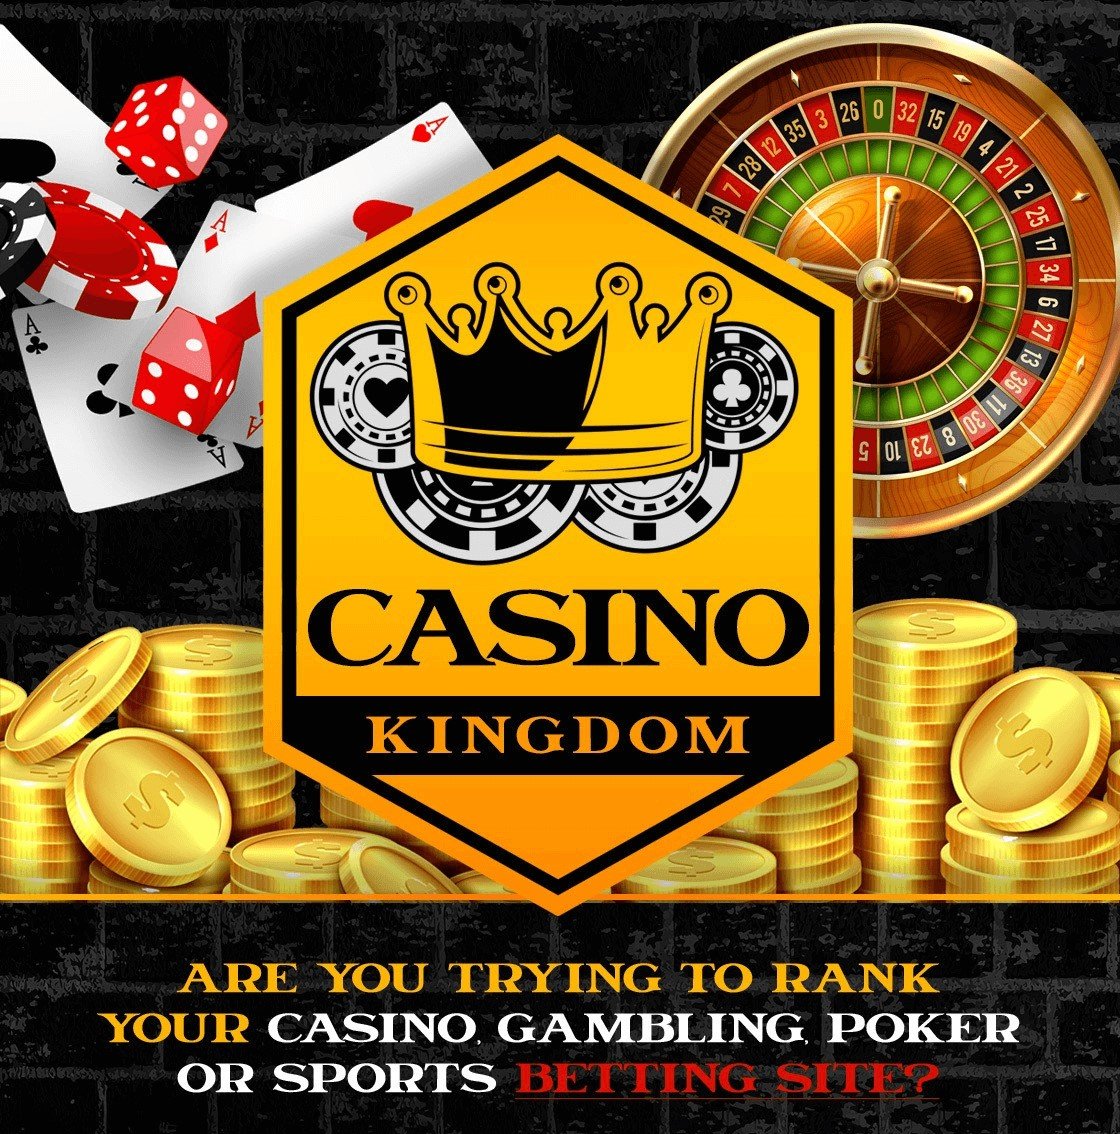 GET 300 POWERFUL PBN NETWORK NICHE RELEVENT ONLY Judi bola GAMBLING CASINO